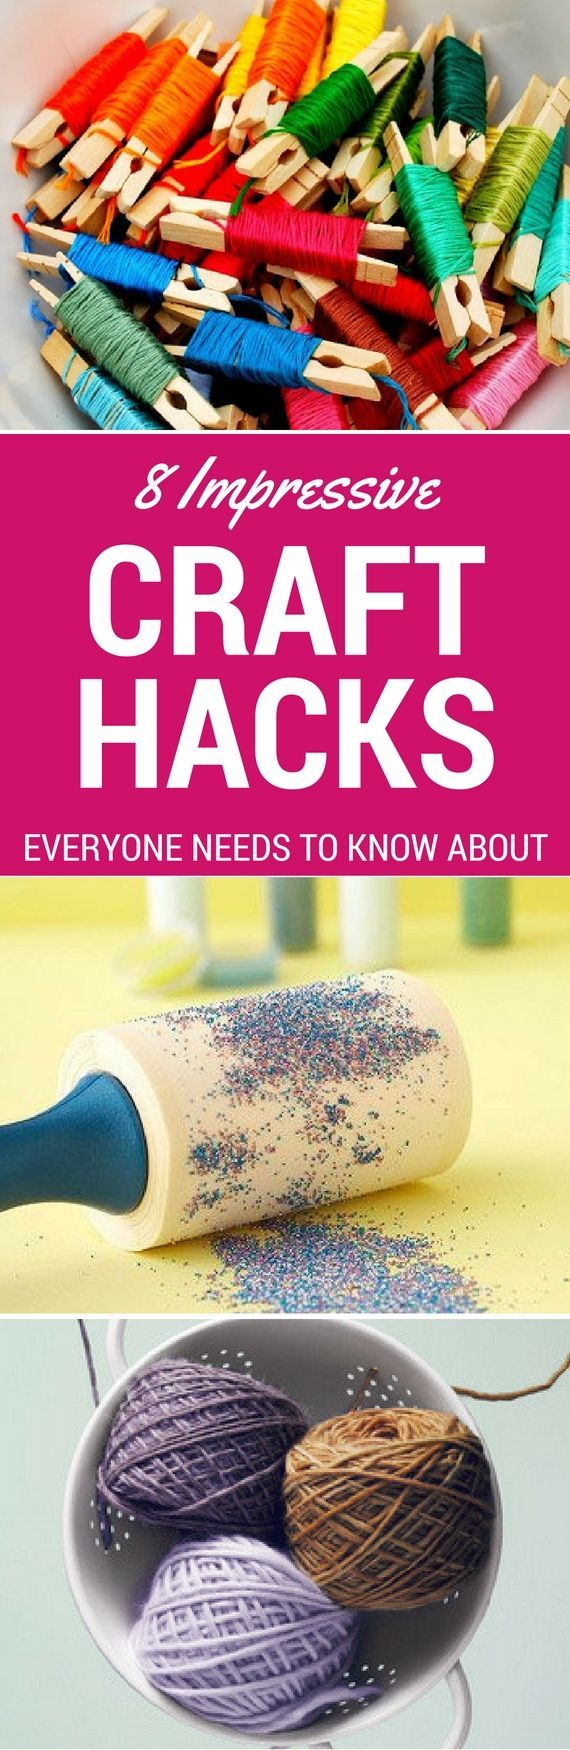 8 Creative Craft Hacks For DIY Projects - Struggle no more with these awesome craft hacks to solve all your problems. These diy craft hacks will show you storage options for embroidery thread, a yarn dispenser, how to clean up glitter and so much more!